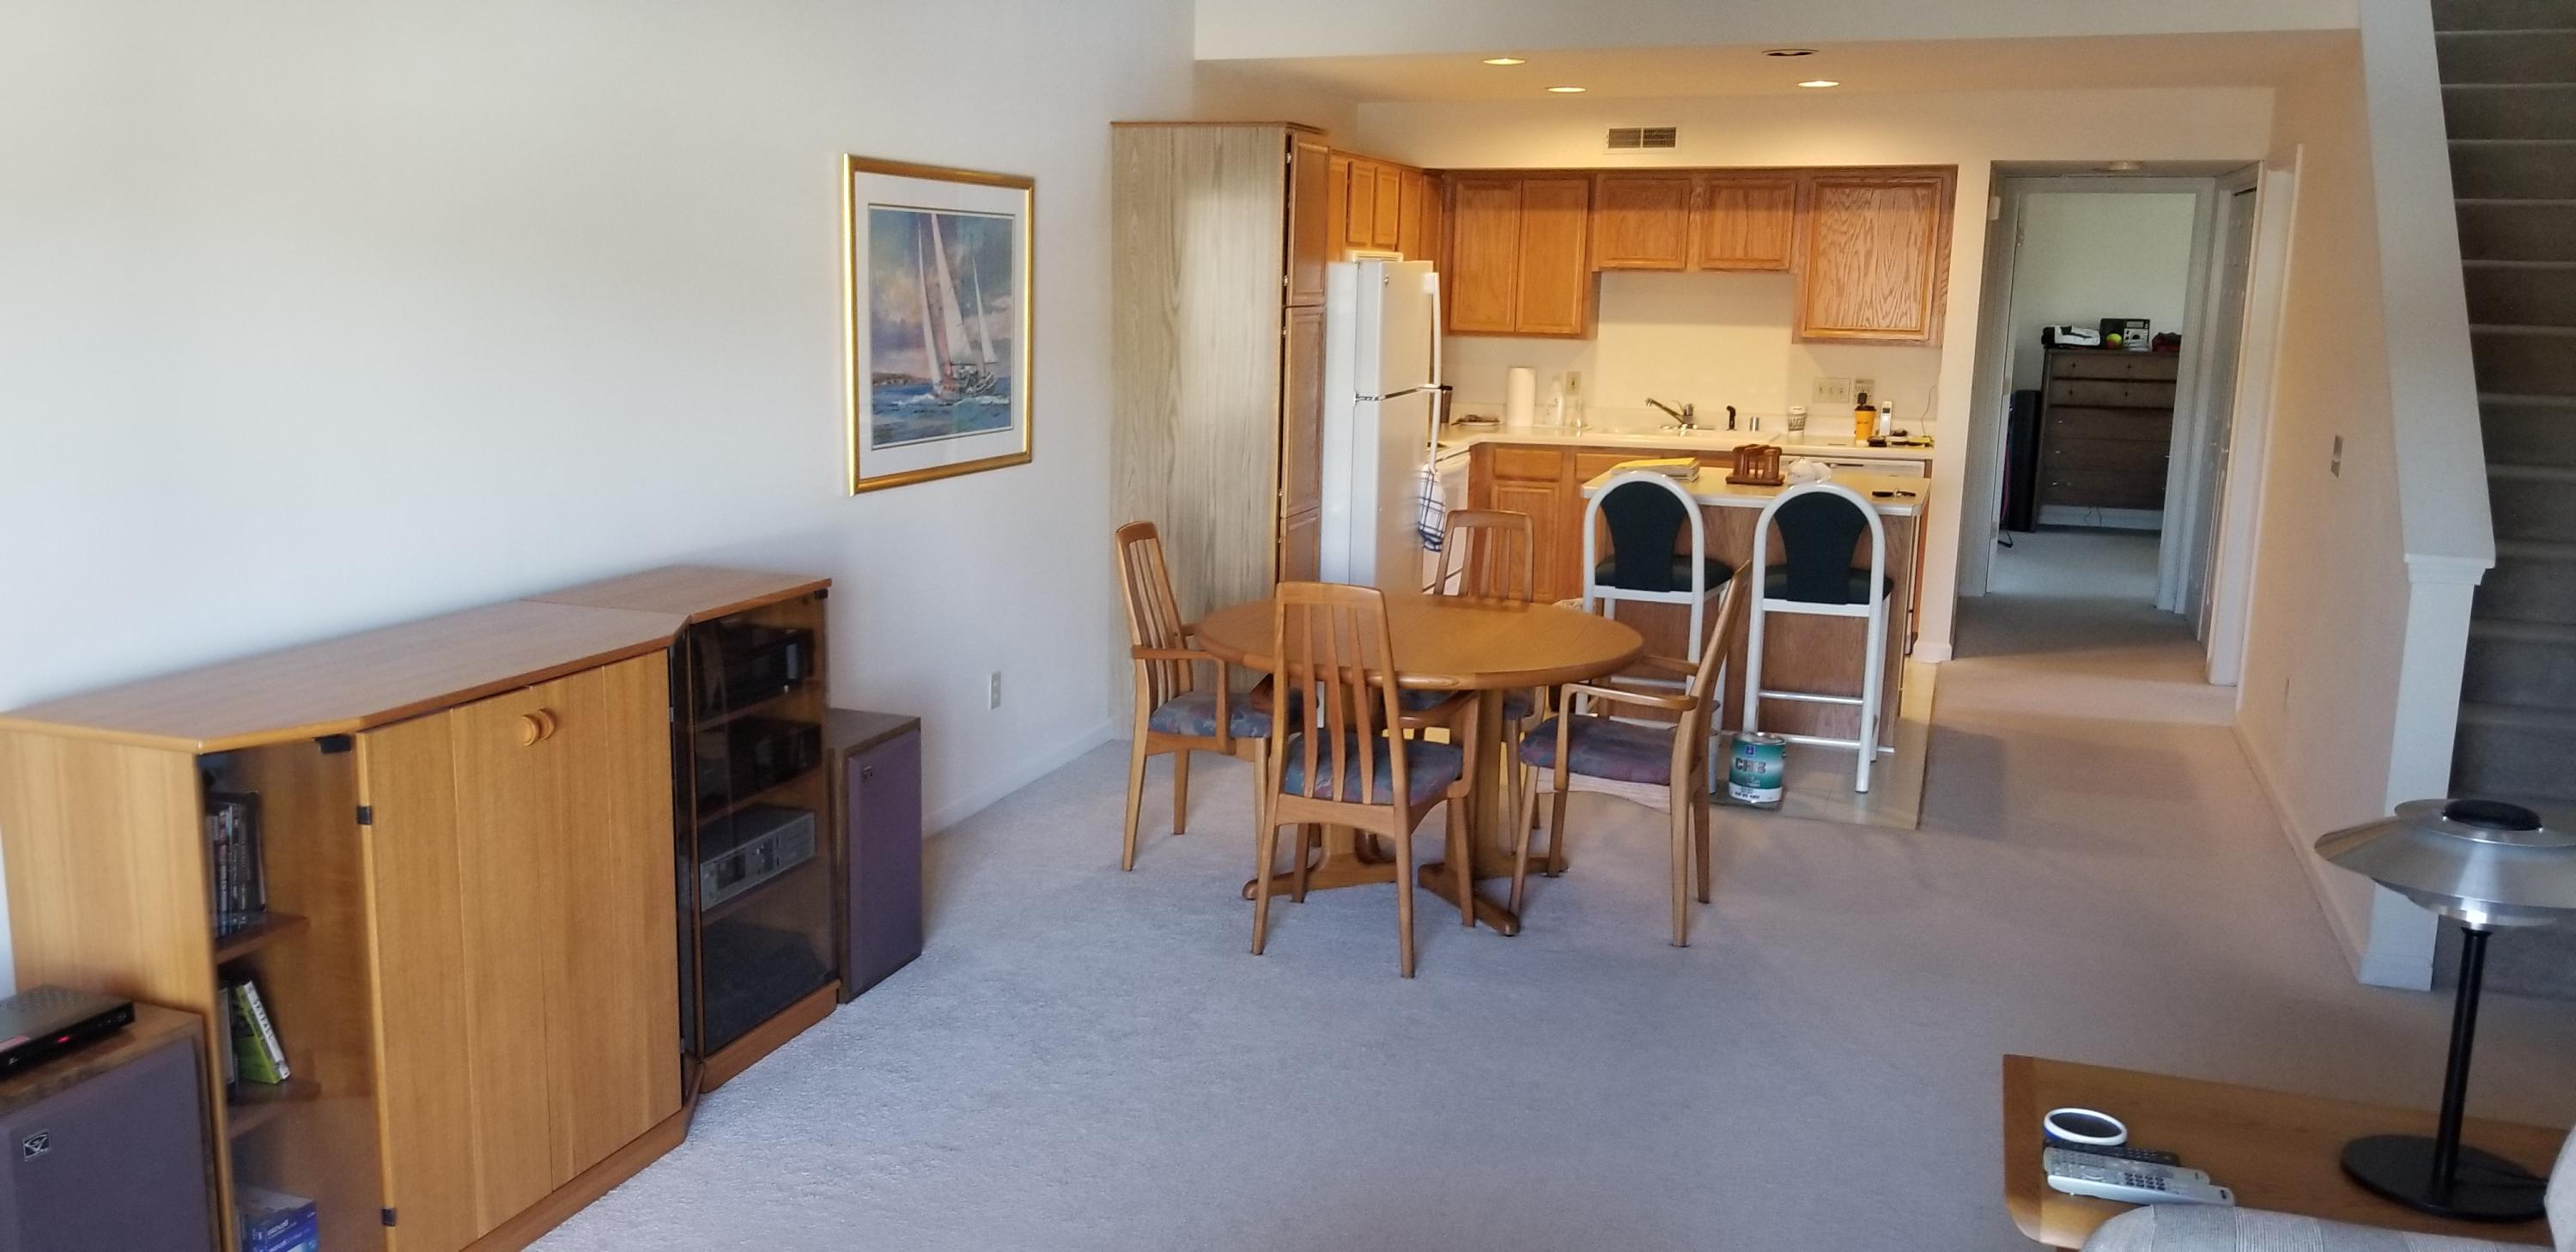 N17W26865 Fieldhack Dr, Pewaukee, Wisconsin 53072, 2 Bedrooms Bedrooms, ,2 BathroomsBathrooms,Condominiums,For Sale,Fieldhack Dr,2,1664887